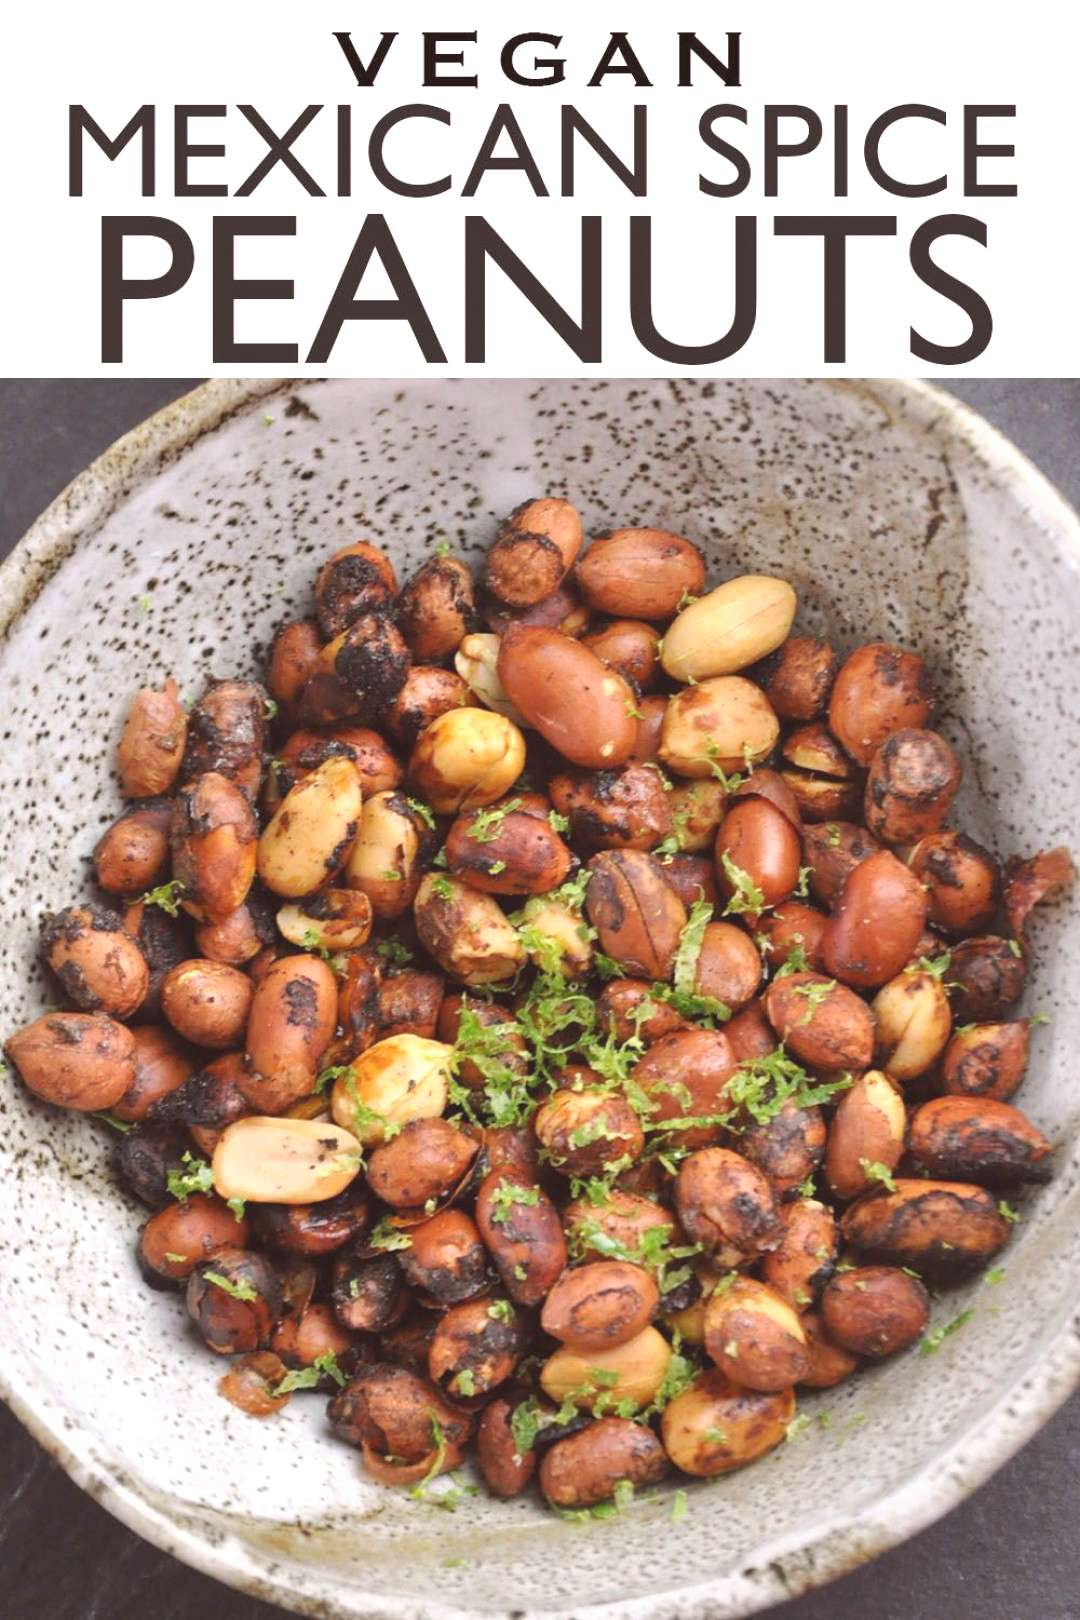 WARNING These Mexican Spice Peanuts are ADDICTIVE! Serve them at your next party and your guests w